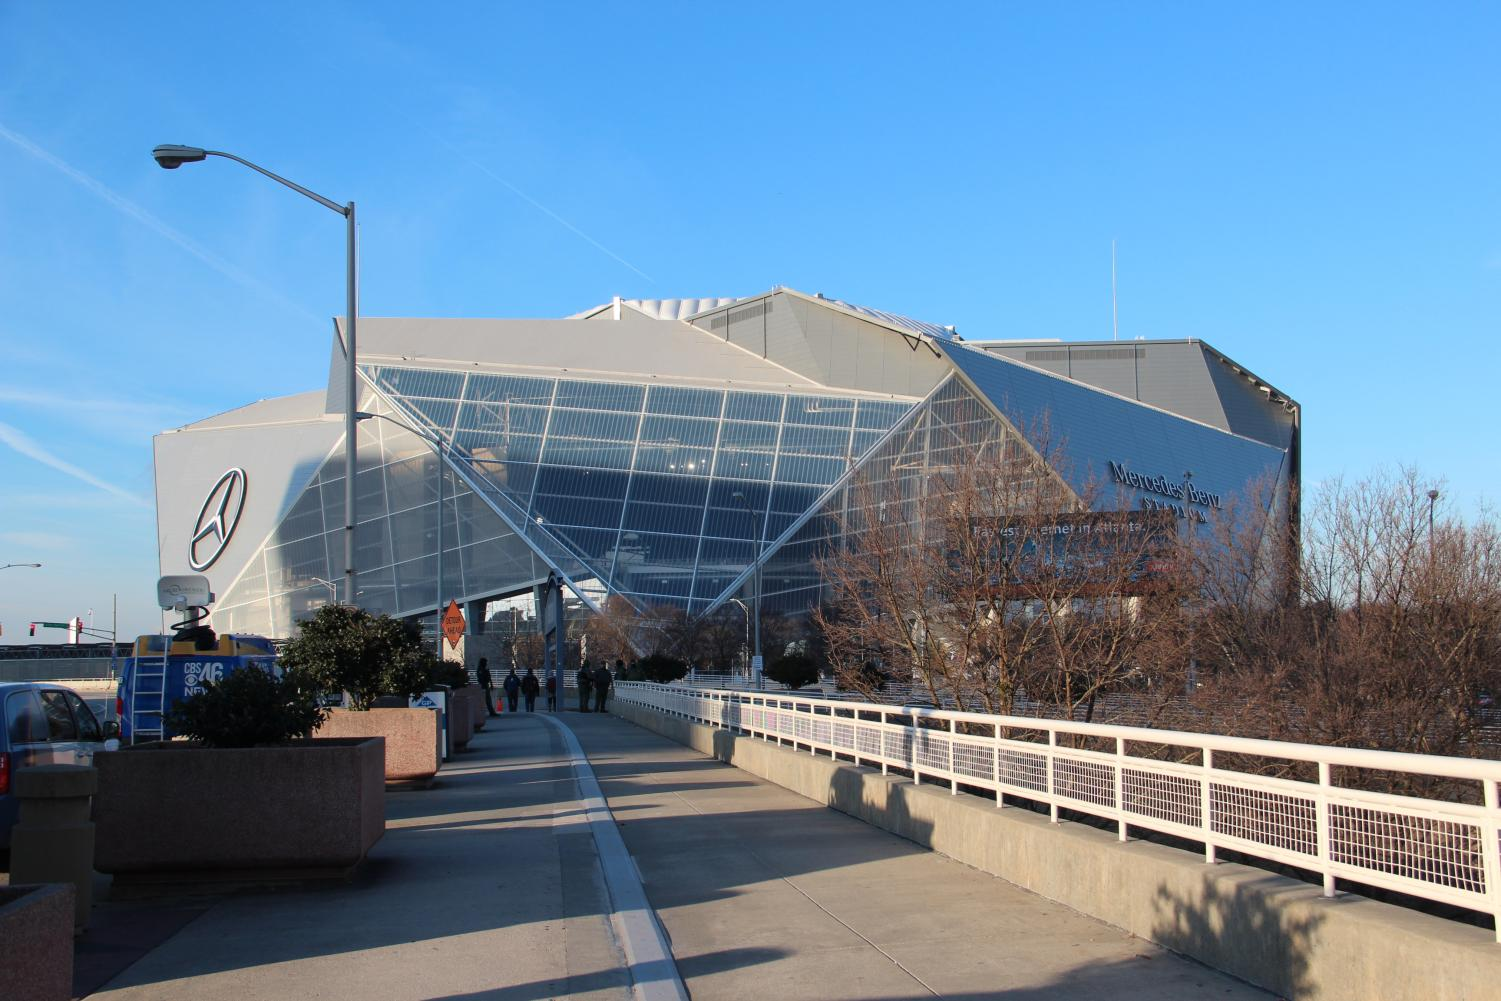 The Super Bowl will be played at Mercedes-Benz Stadium in Atlanta. The game will be played at 5:30 p.m. on CBS.